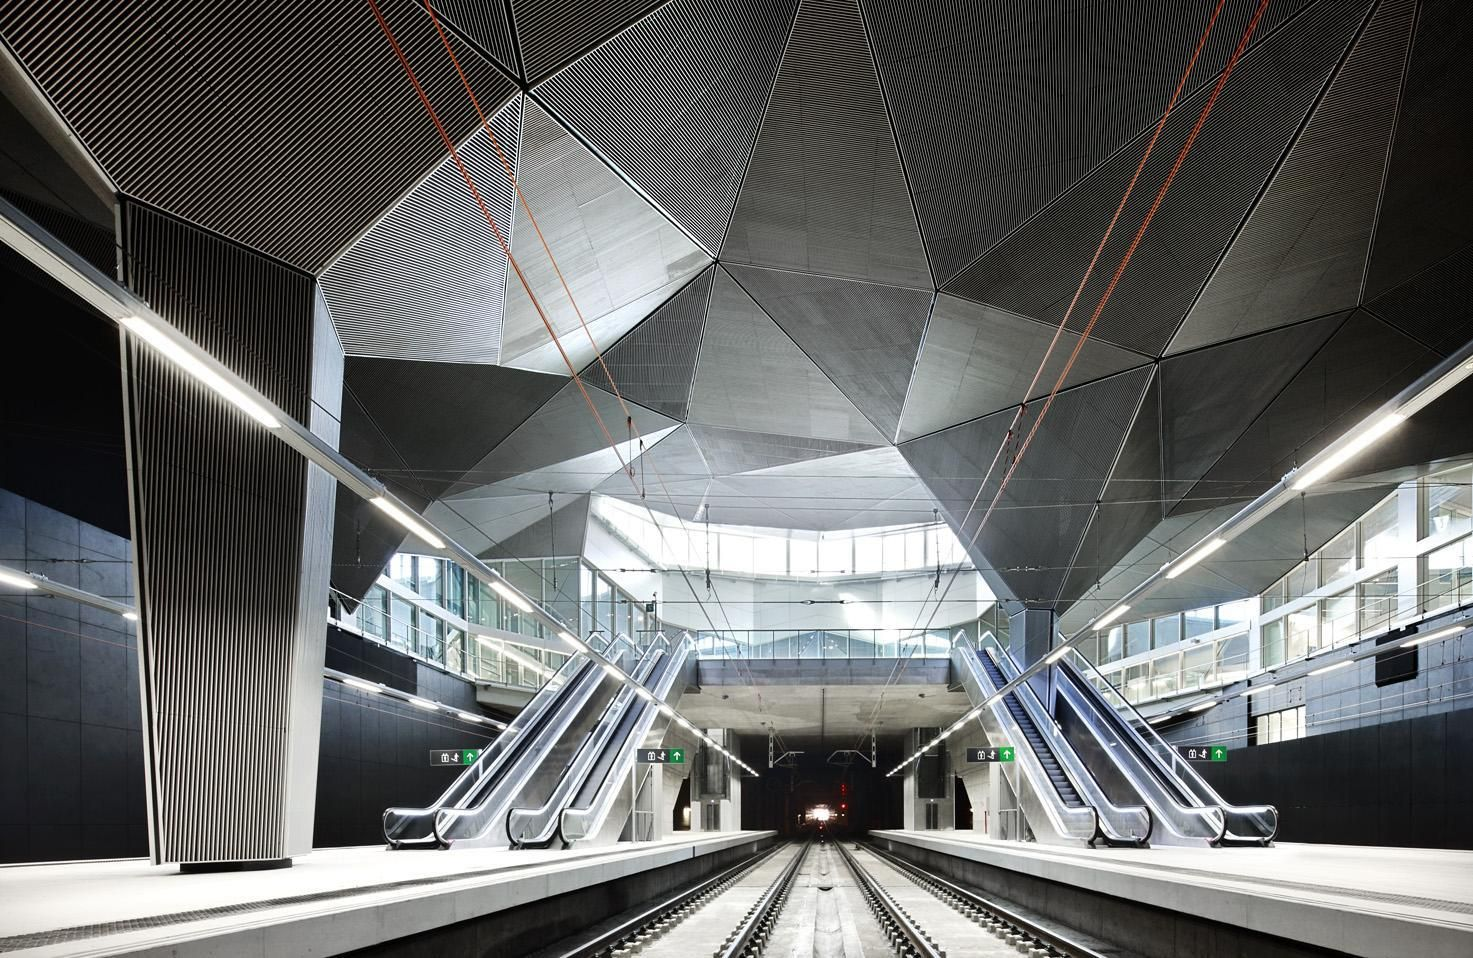 The winning design by architects Iñaki Ábalos and Juan Herreros in the 'International Contest for the Urban Integration of the Railroad in the City ofLogrono': http://www.archello.com/en/project/adif-railway-station-logroño  #Archello #Design #station